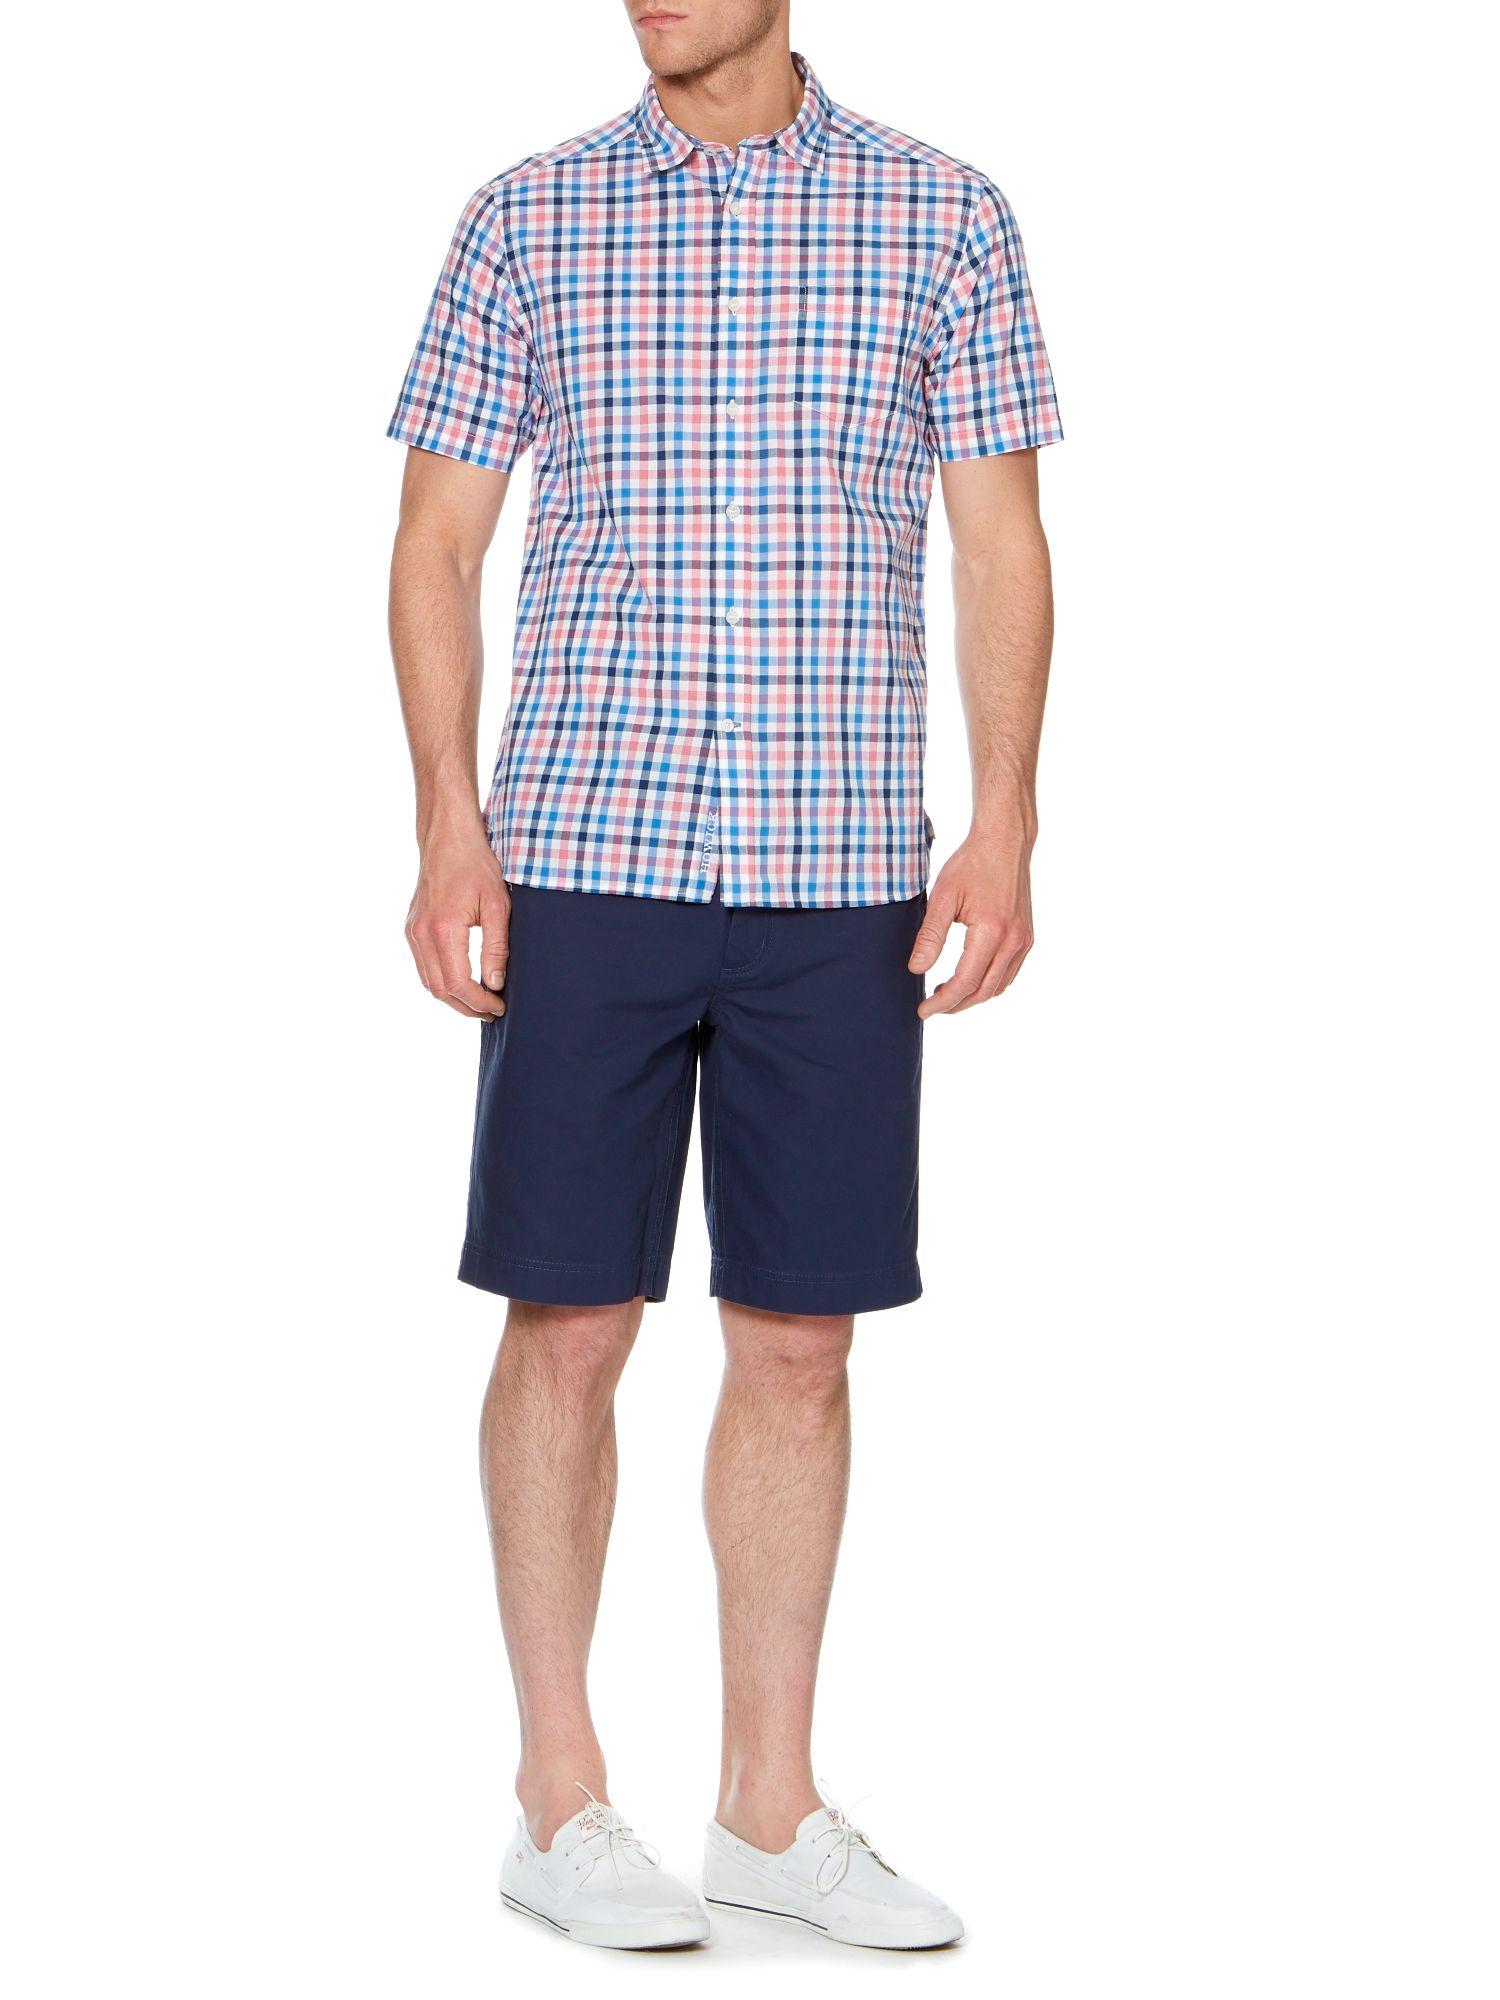 caslano check short sleeve shirt